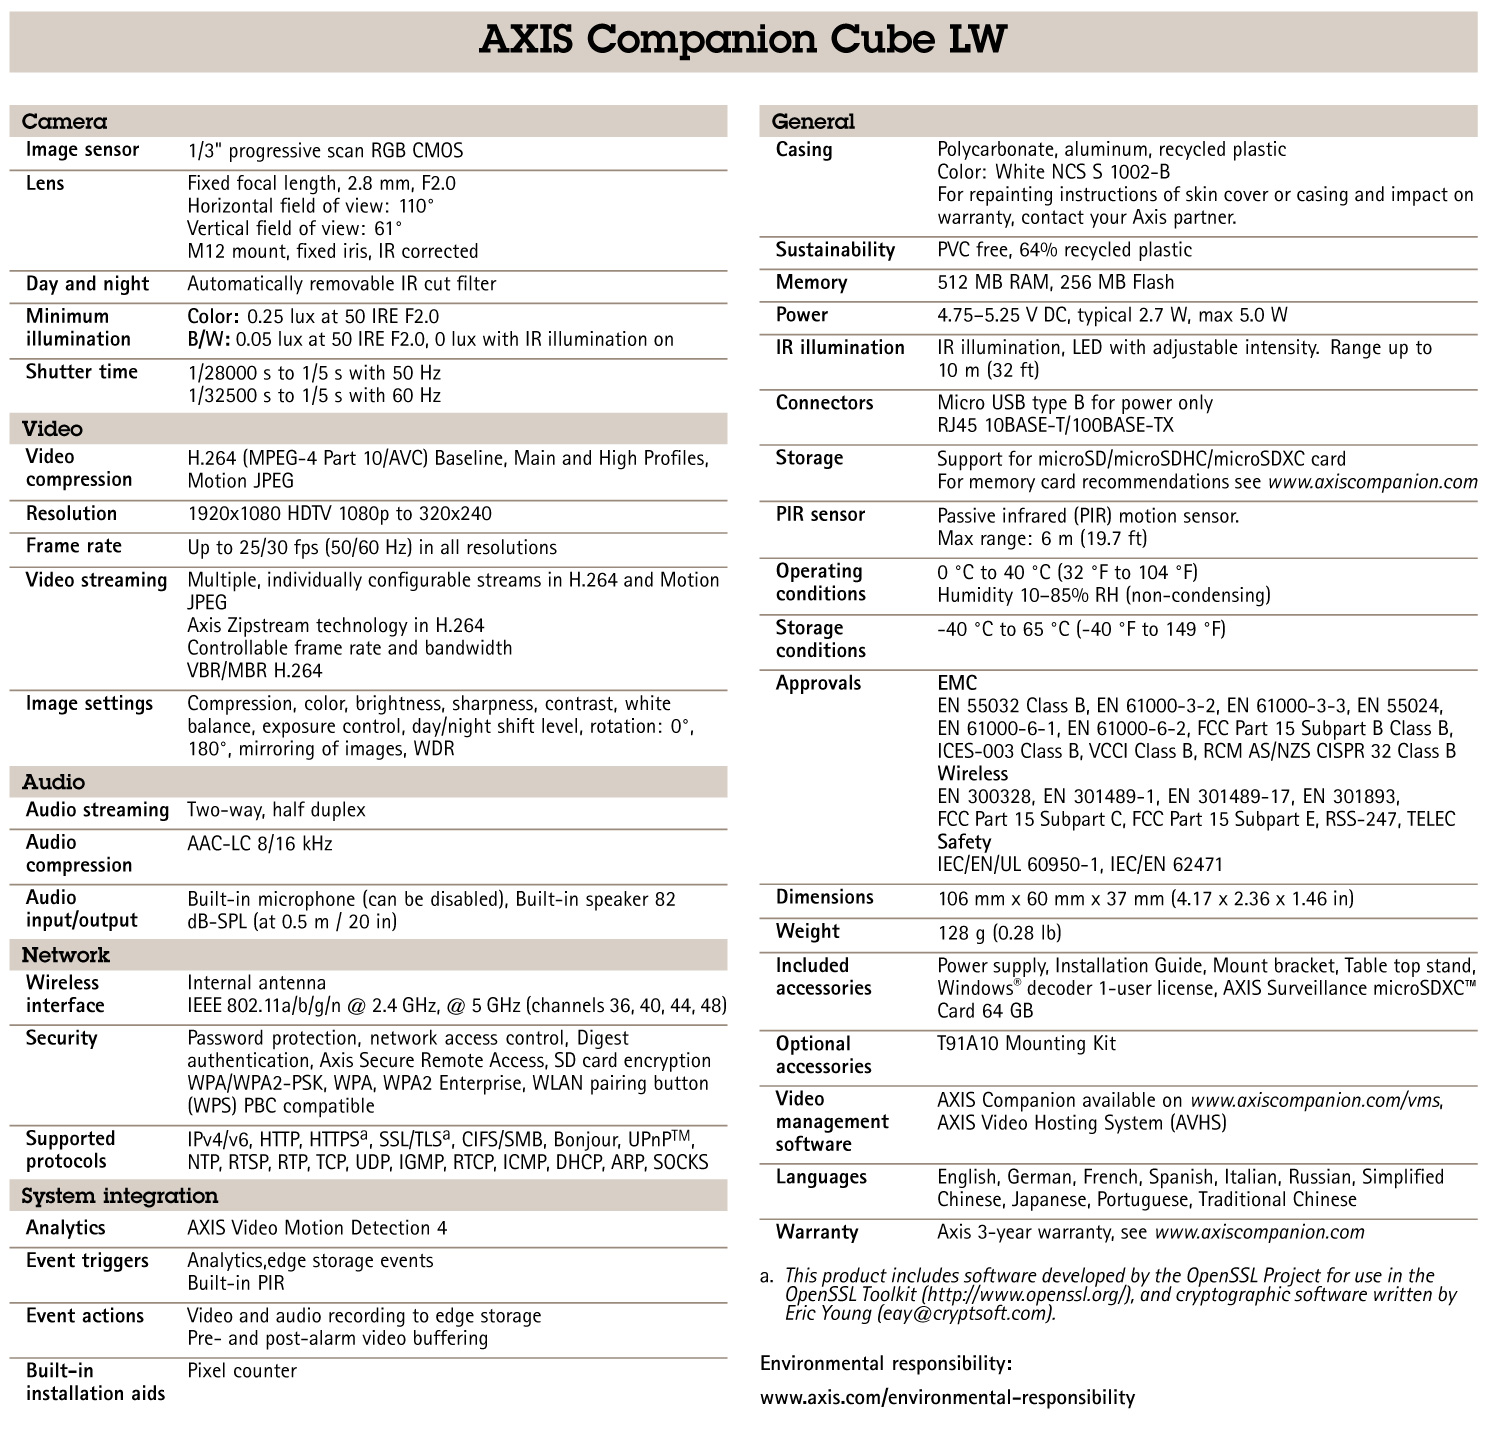 AXIS Companion Cube LW Specifications